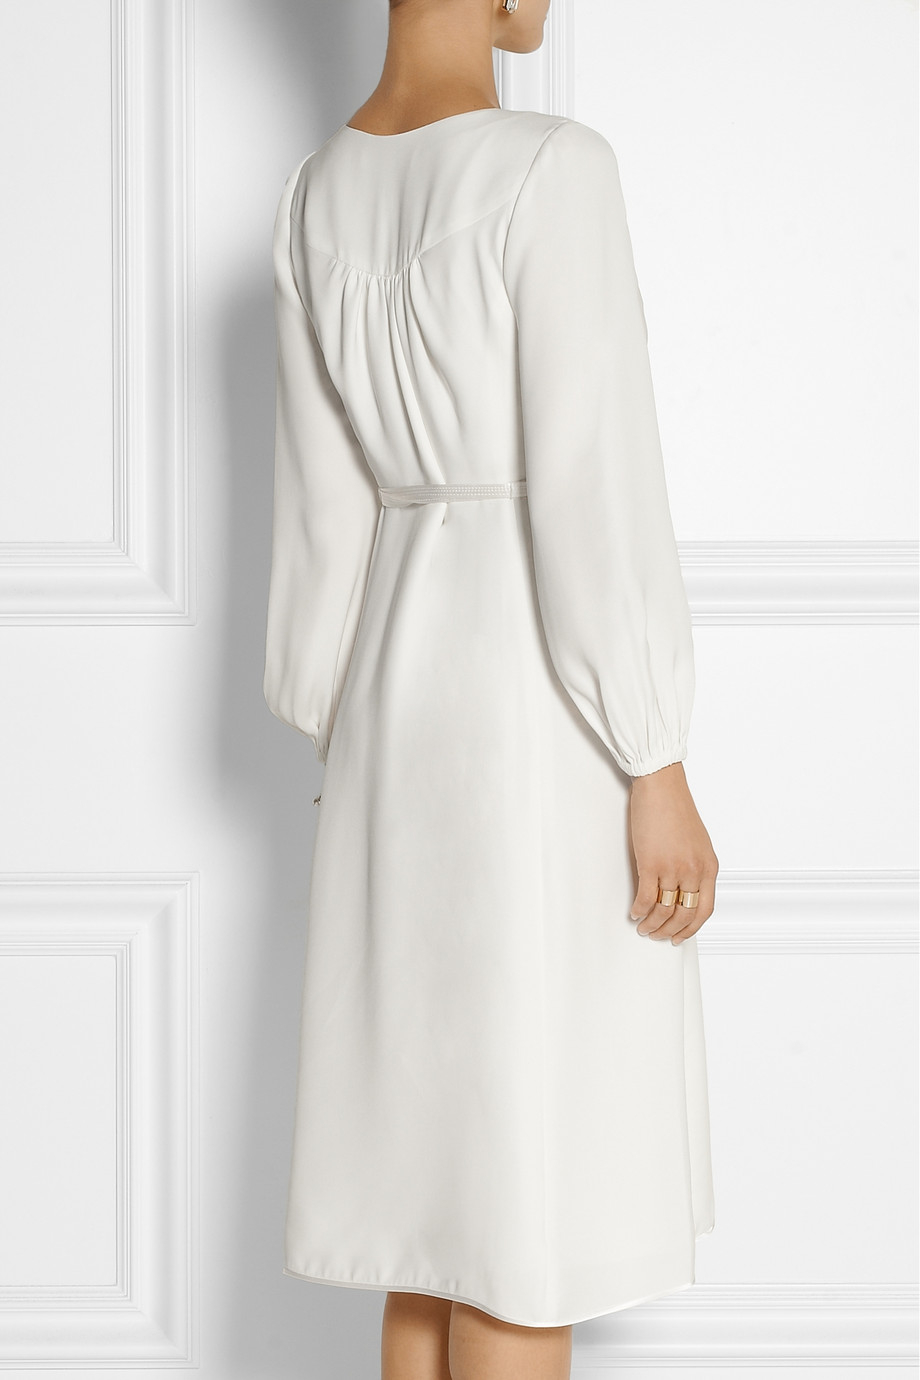 Marc Jacobs Silk Crepe Wrap Dress In White Lyst